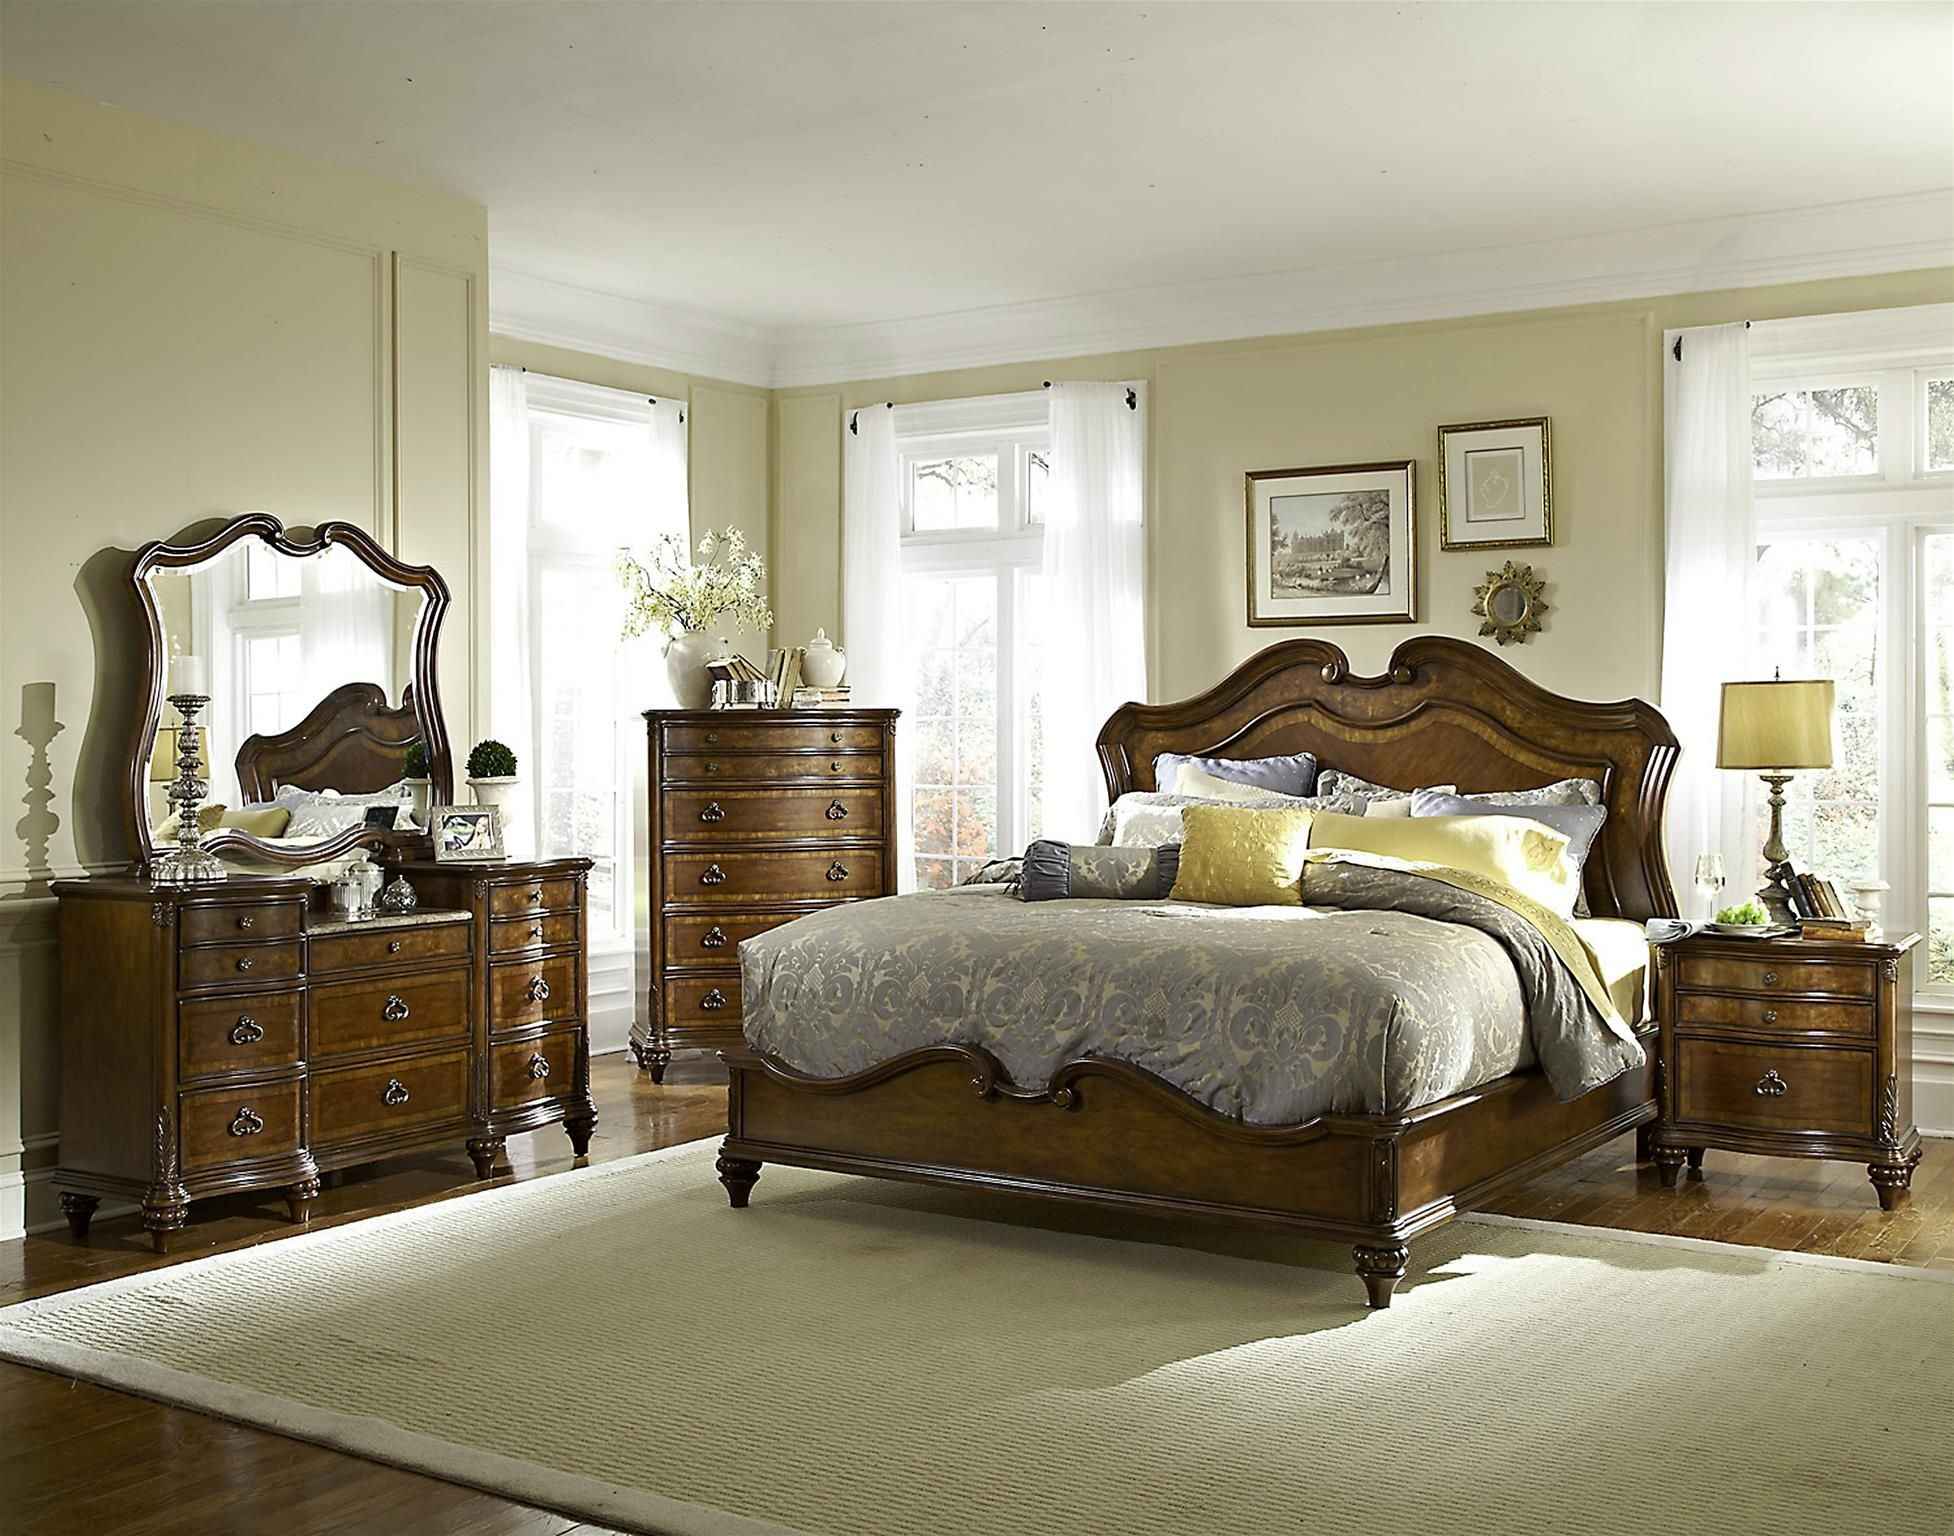 Marisol brighton cherry panel bedroom set from fairmont for Q furniture brighton co